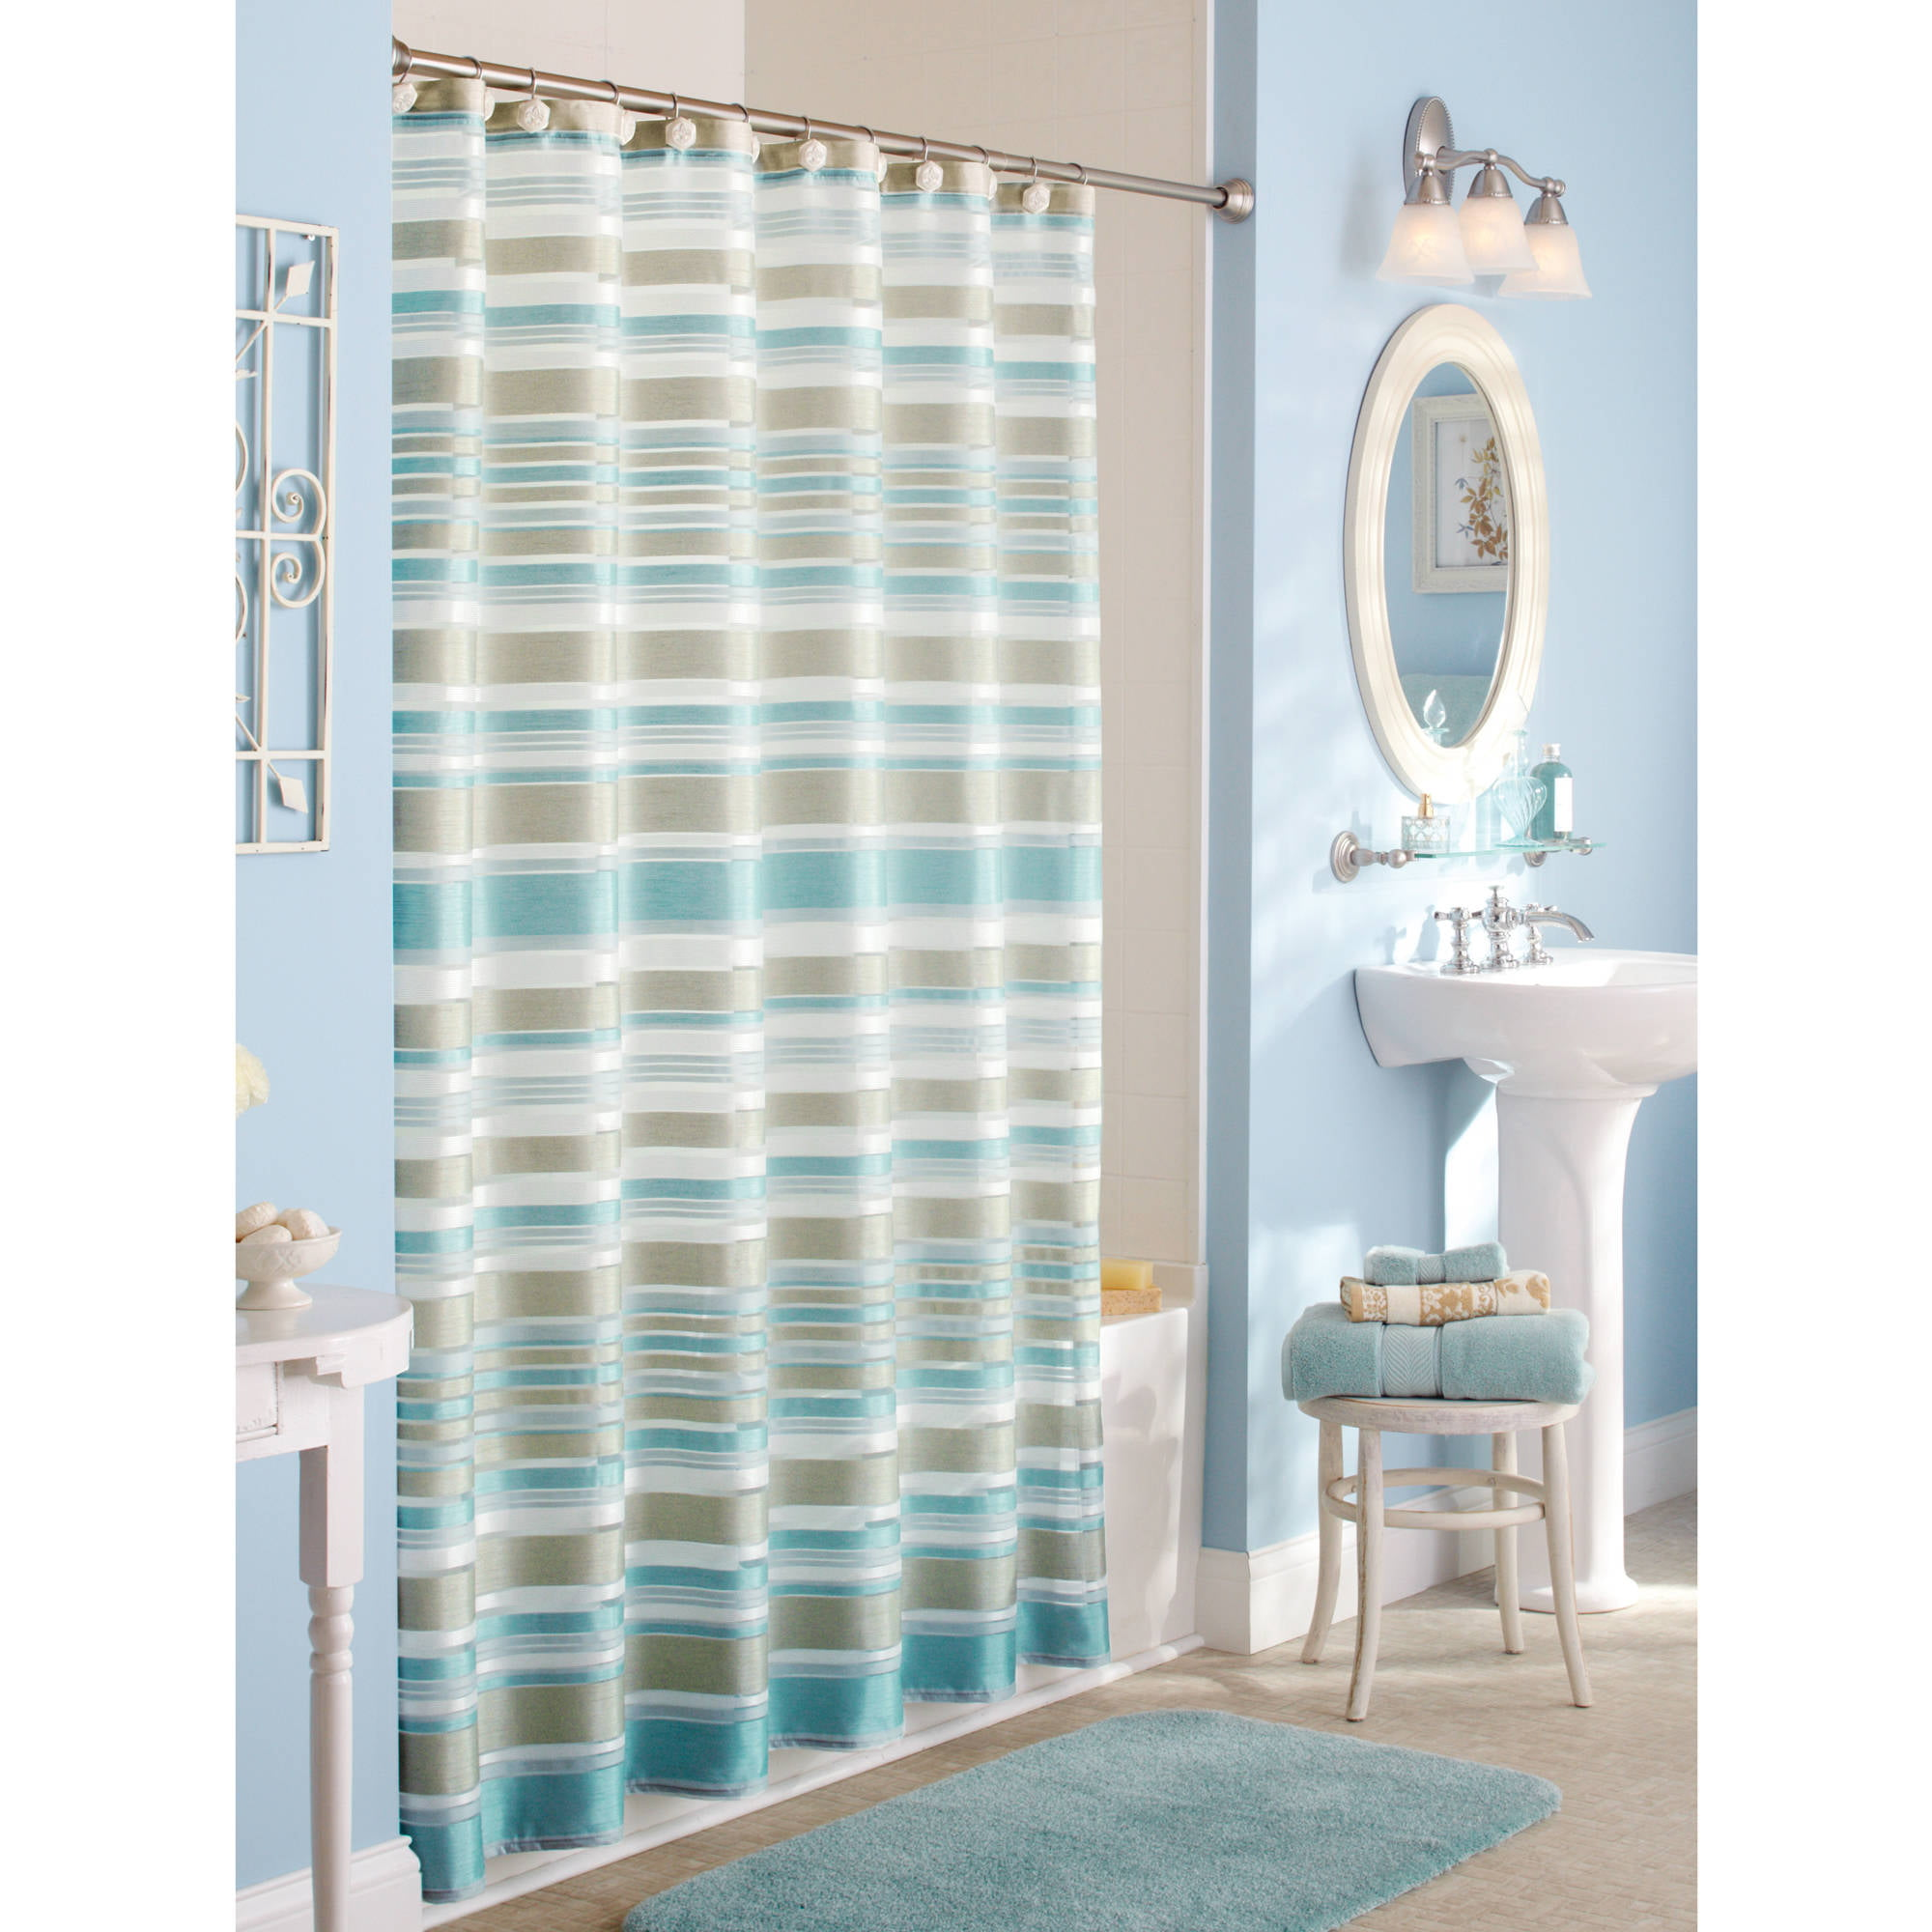 Bathroom plastic curtains - Bathroom Plastic Curtains 33